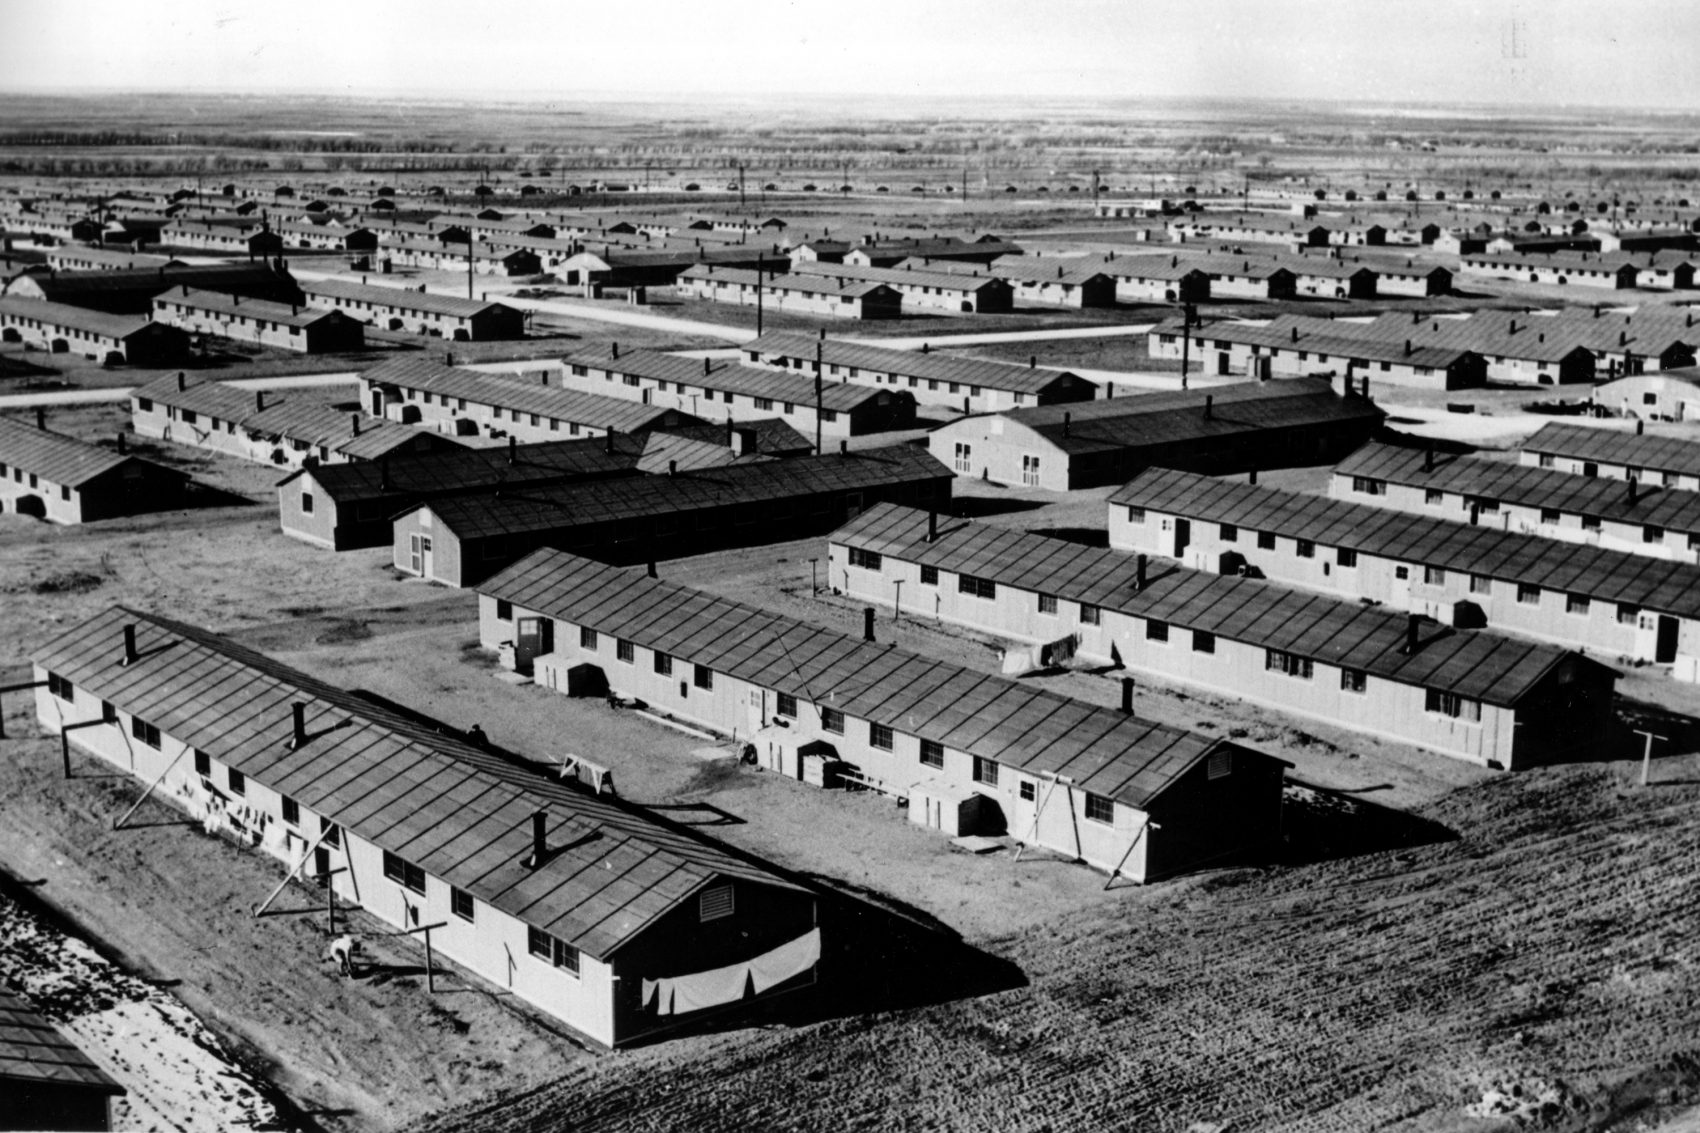 The housing barracks, built by the U.S. Army Engineer Corps, at the internment center where Japanese Americans were relocated in Amache, Colo., are shown on June 21, 1943. (AP Photo)